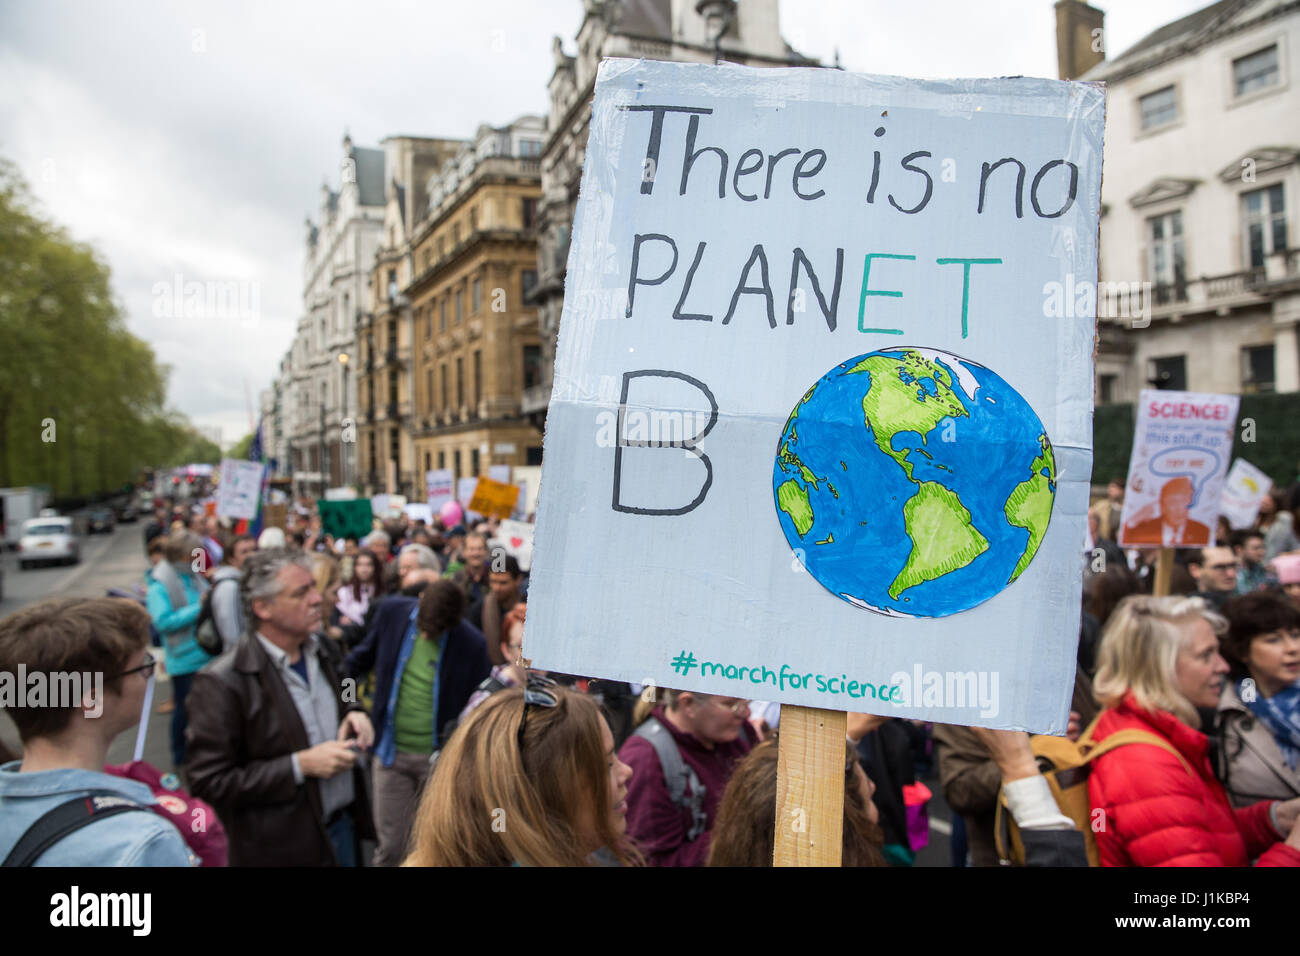 London, UK. 22nd Apr, 2017. Scientists march through central London on the 'March for Science' as part of a - Stock Image